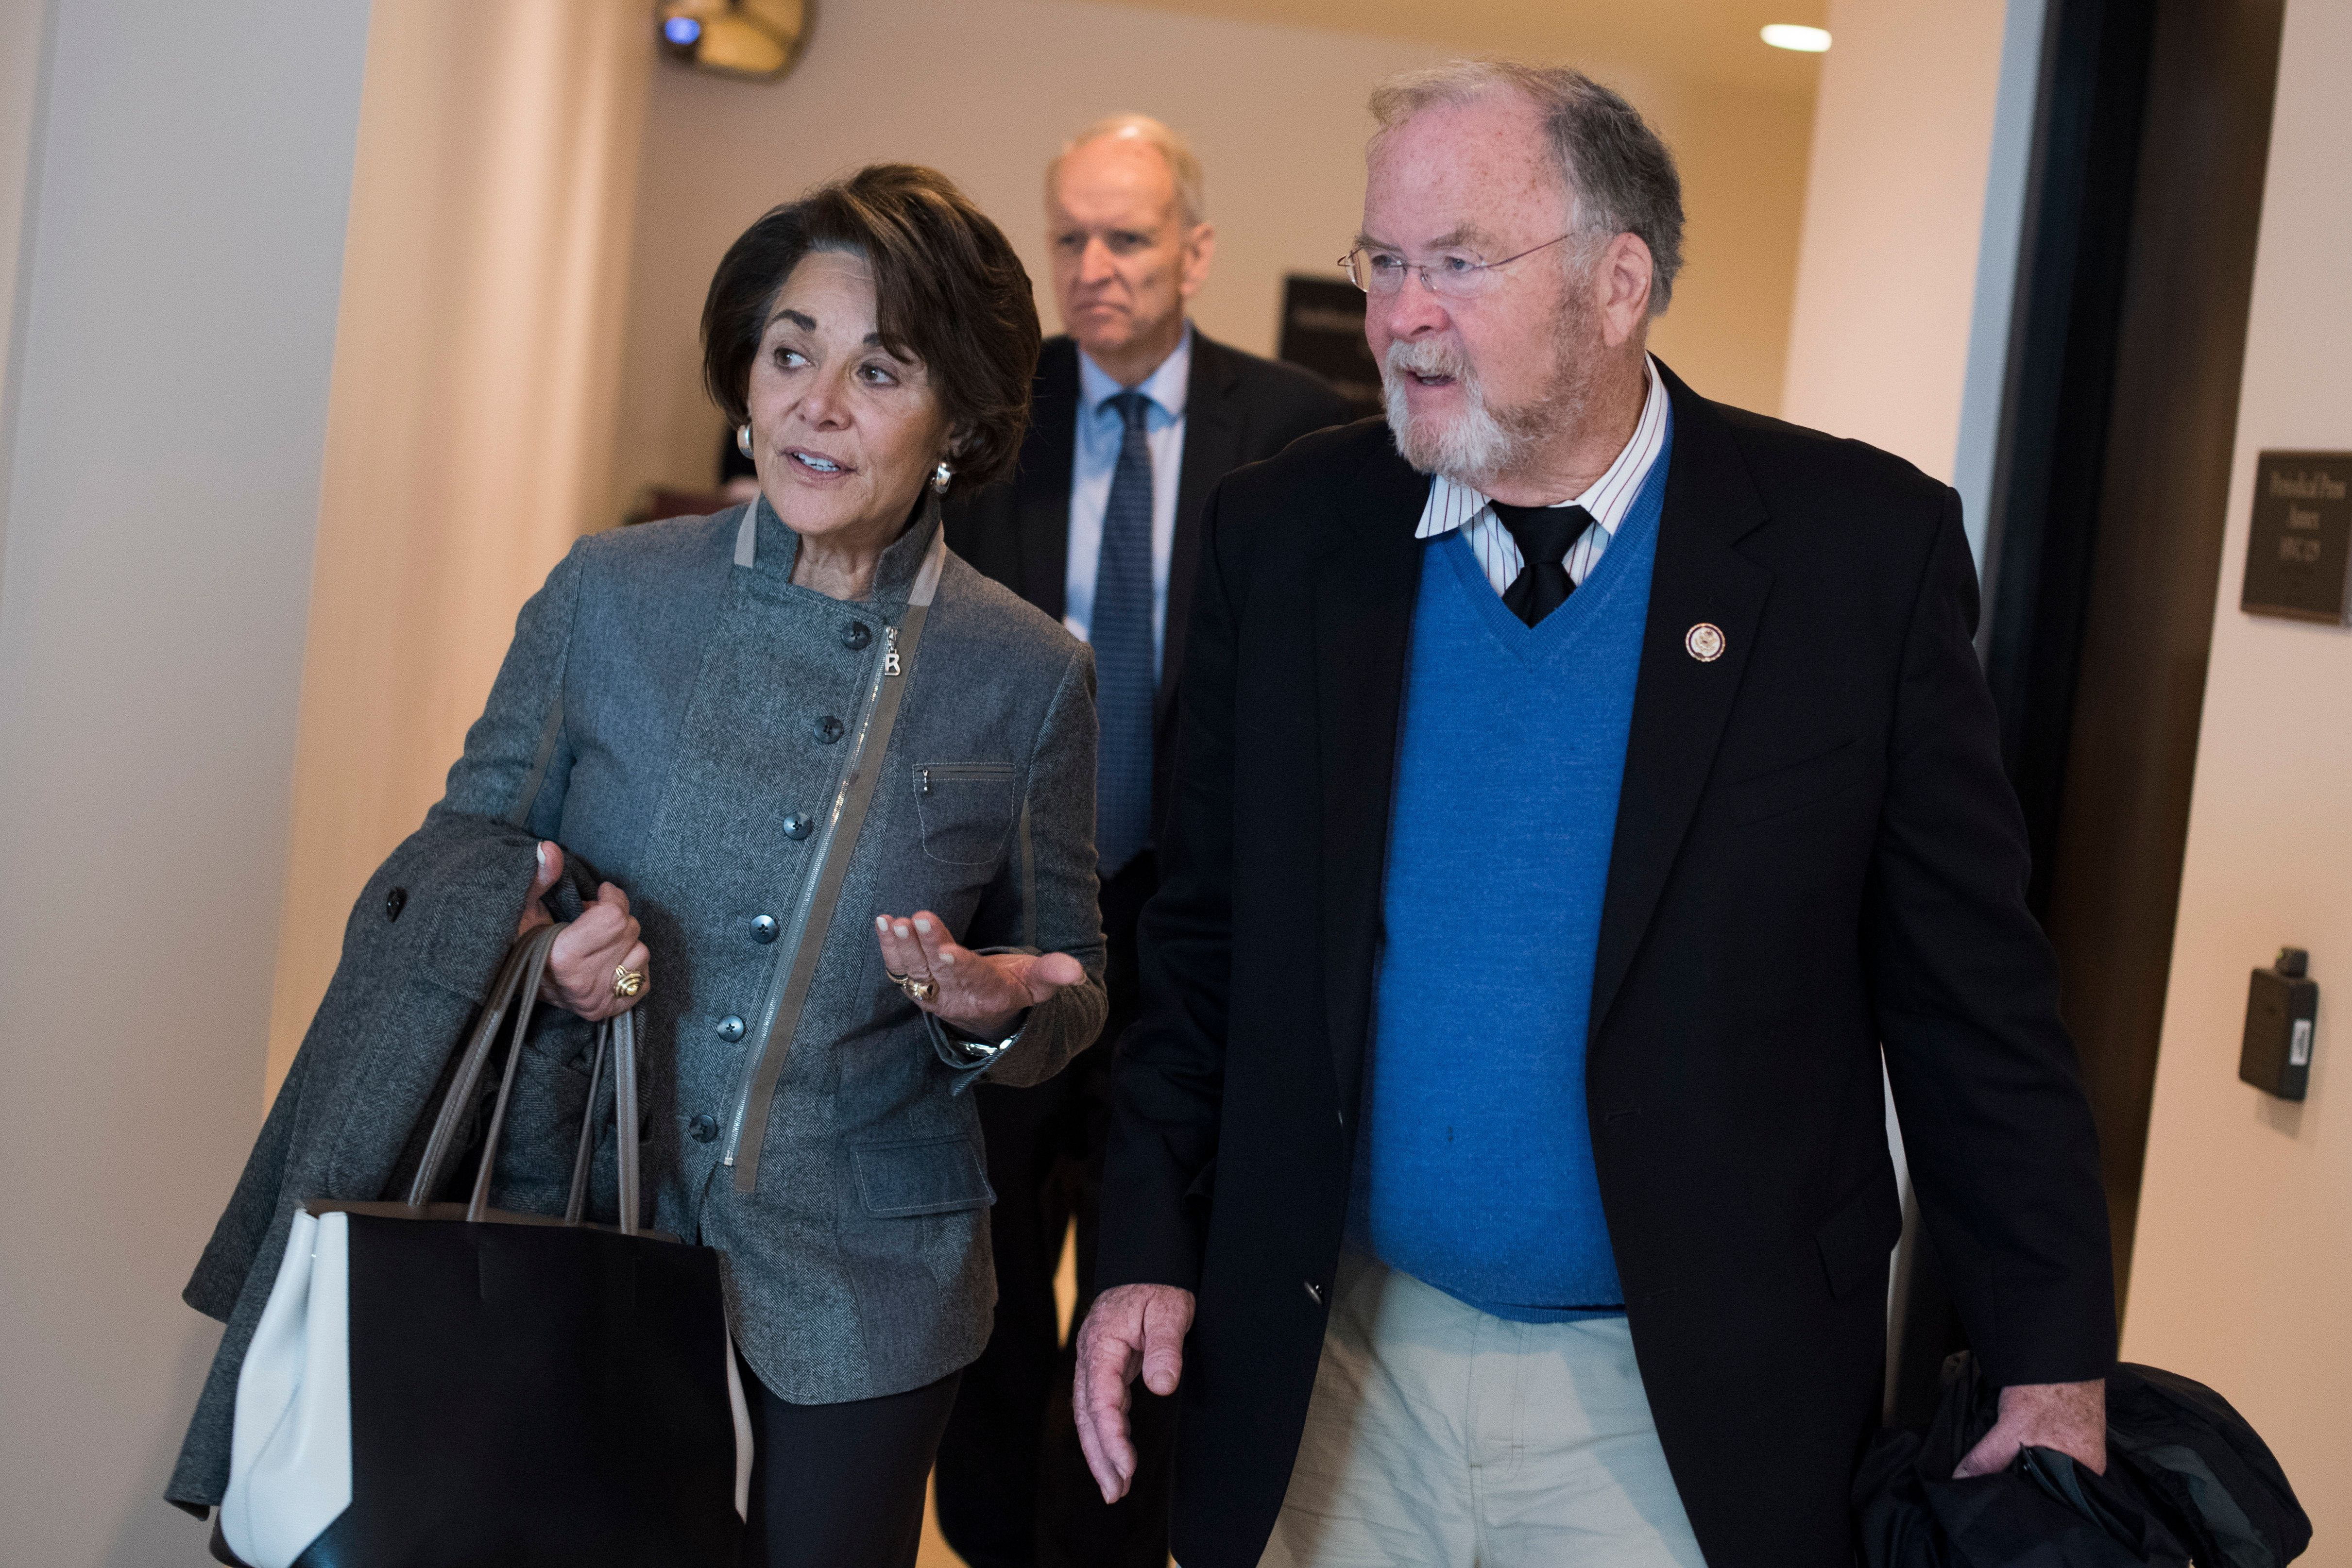 UNITED STATES - FEBRUARY 27: Rep. Anna Eshoo, D-Calif., and former Rep. Sam Farr, D-Calif., are seen in the Capitol Visitor Center on February 27, 2018. (Photo By Tom Williams/CQ Roll Call)